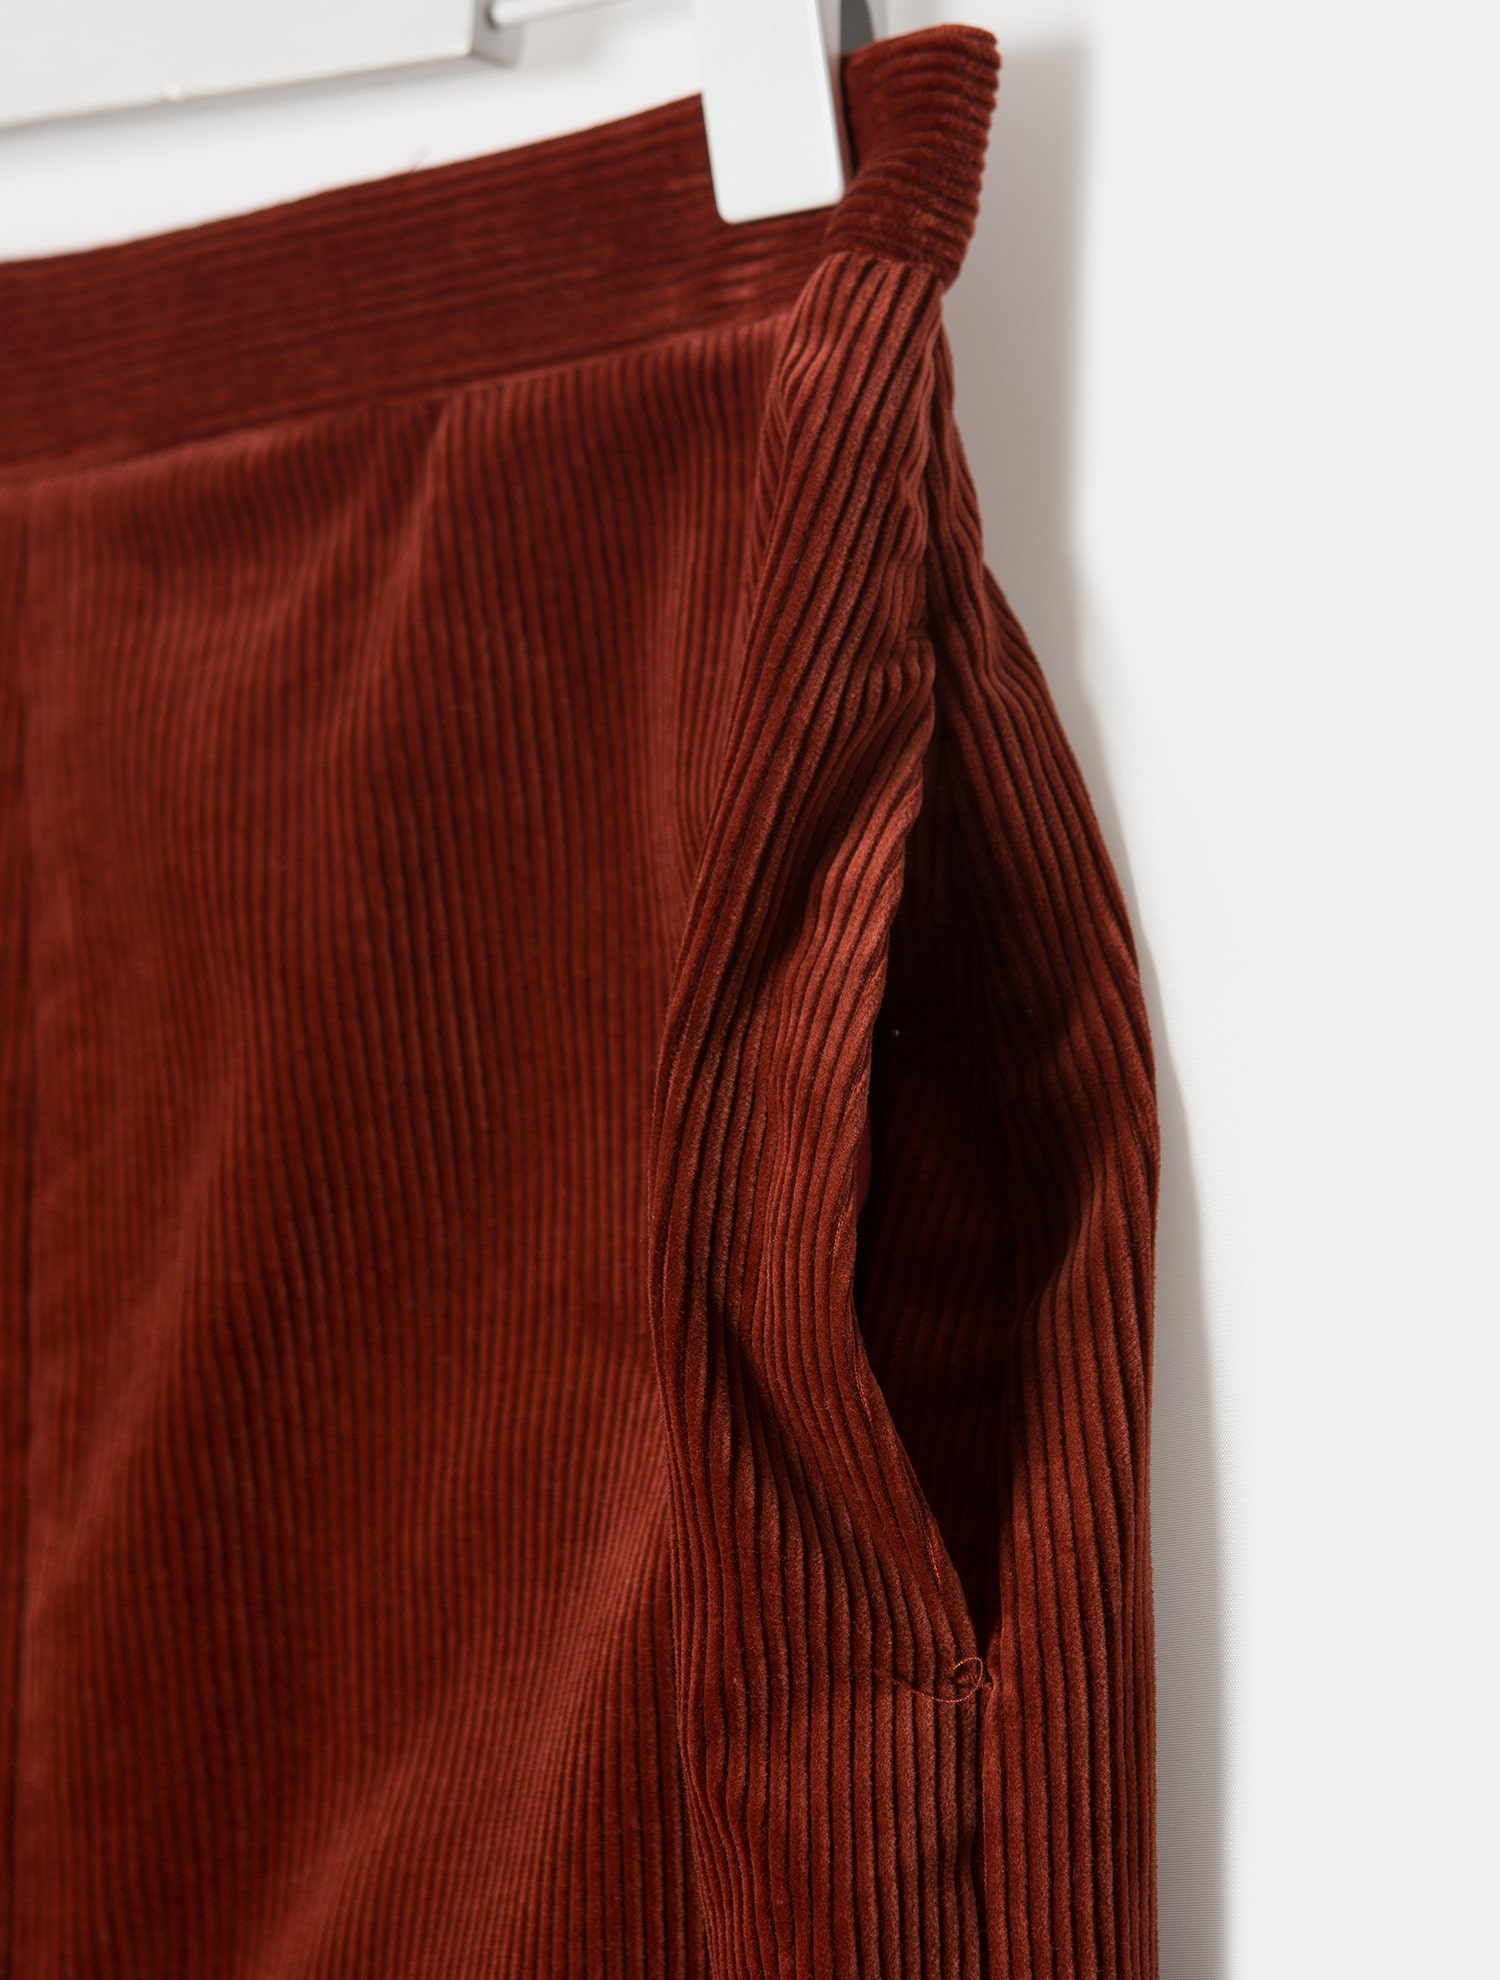 9727d68c7c92 Auralee-Corduroy Front Slit Long Skirt - Red (Women) │Samsung C&T Online  Mall SSF Shop